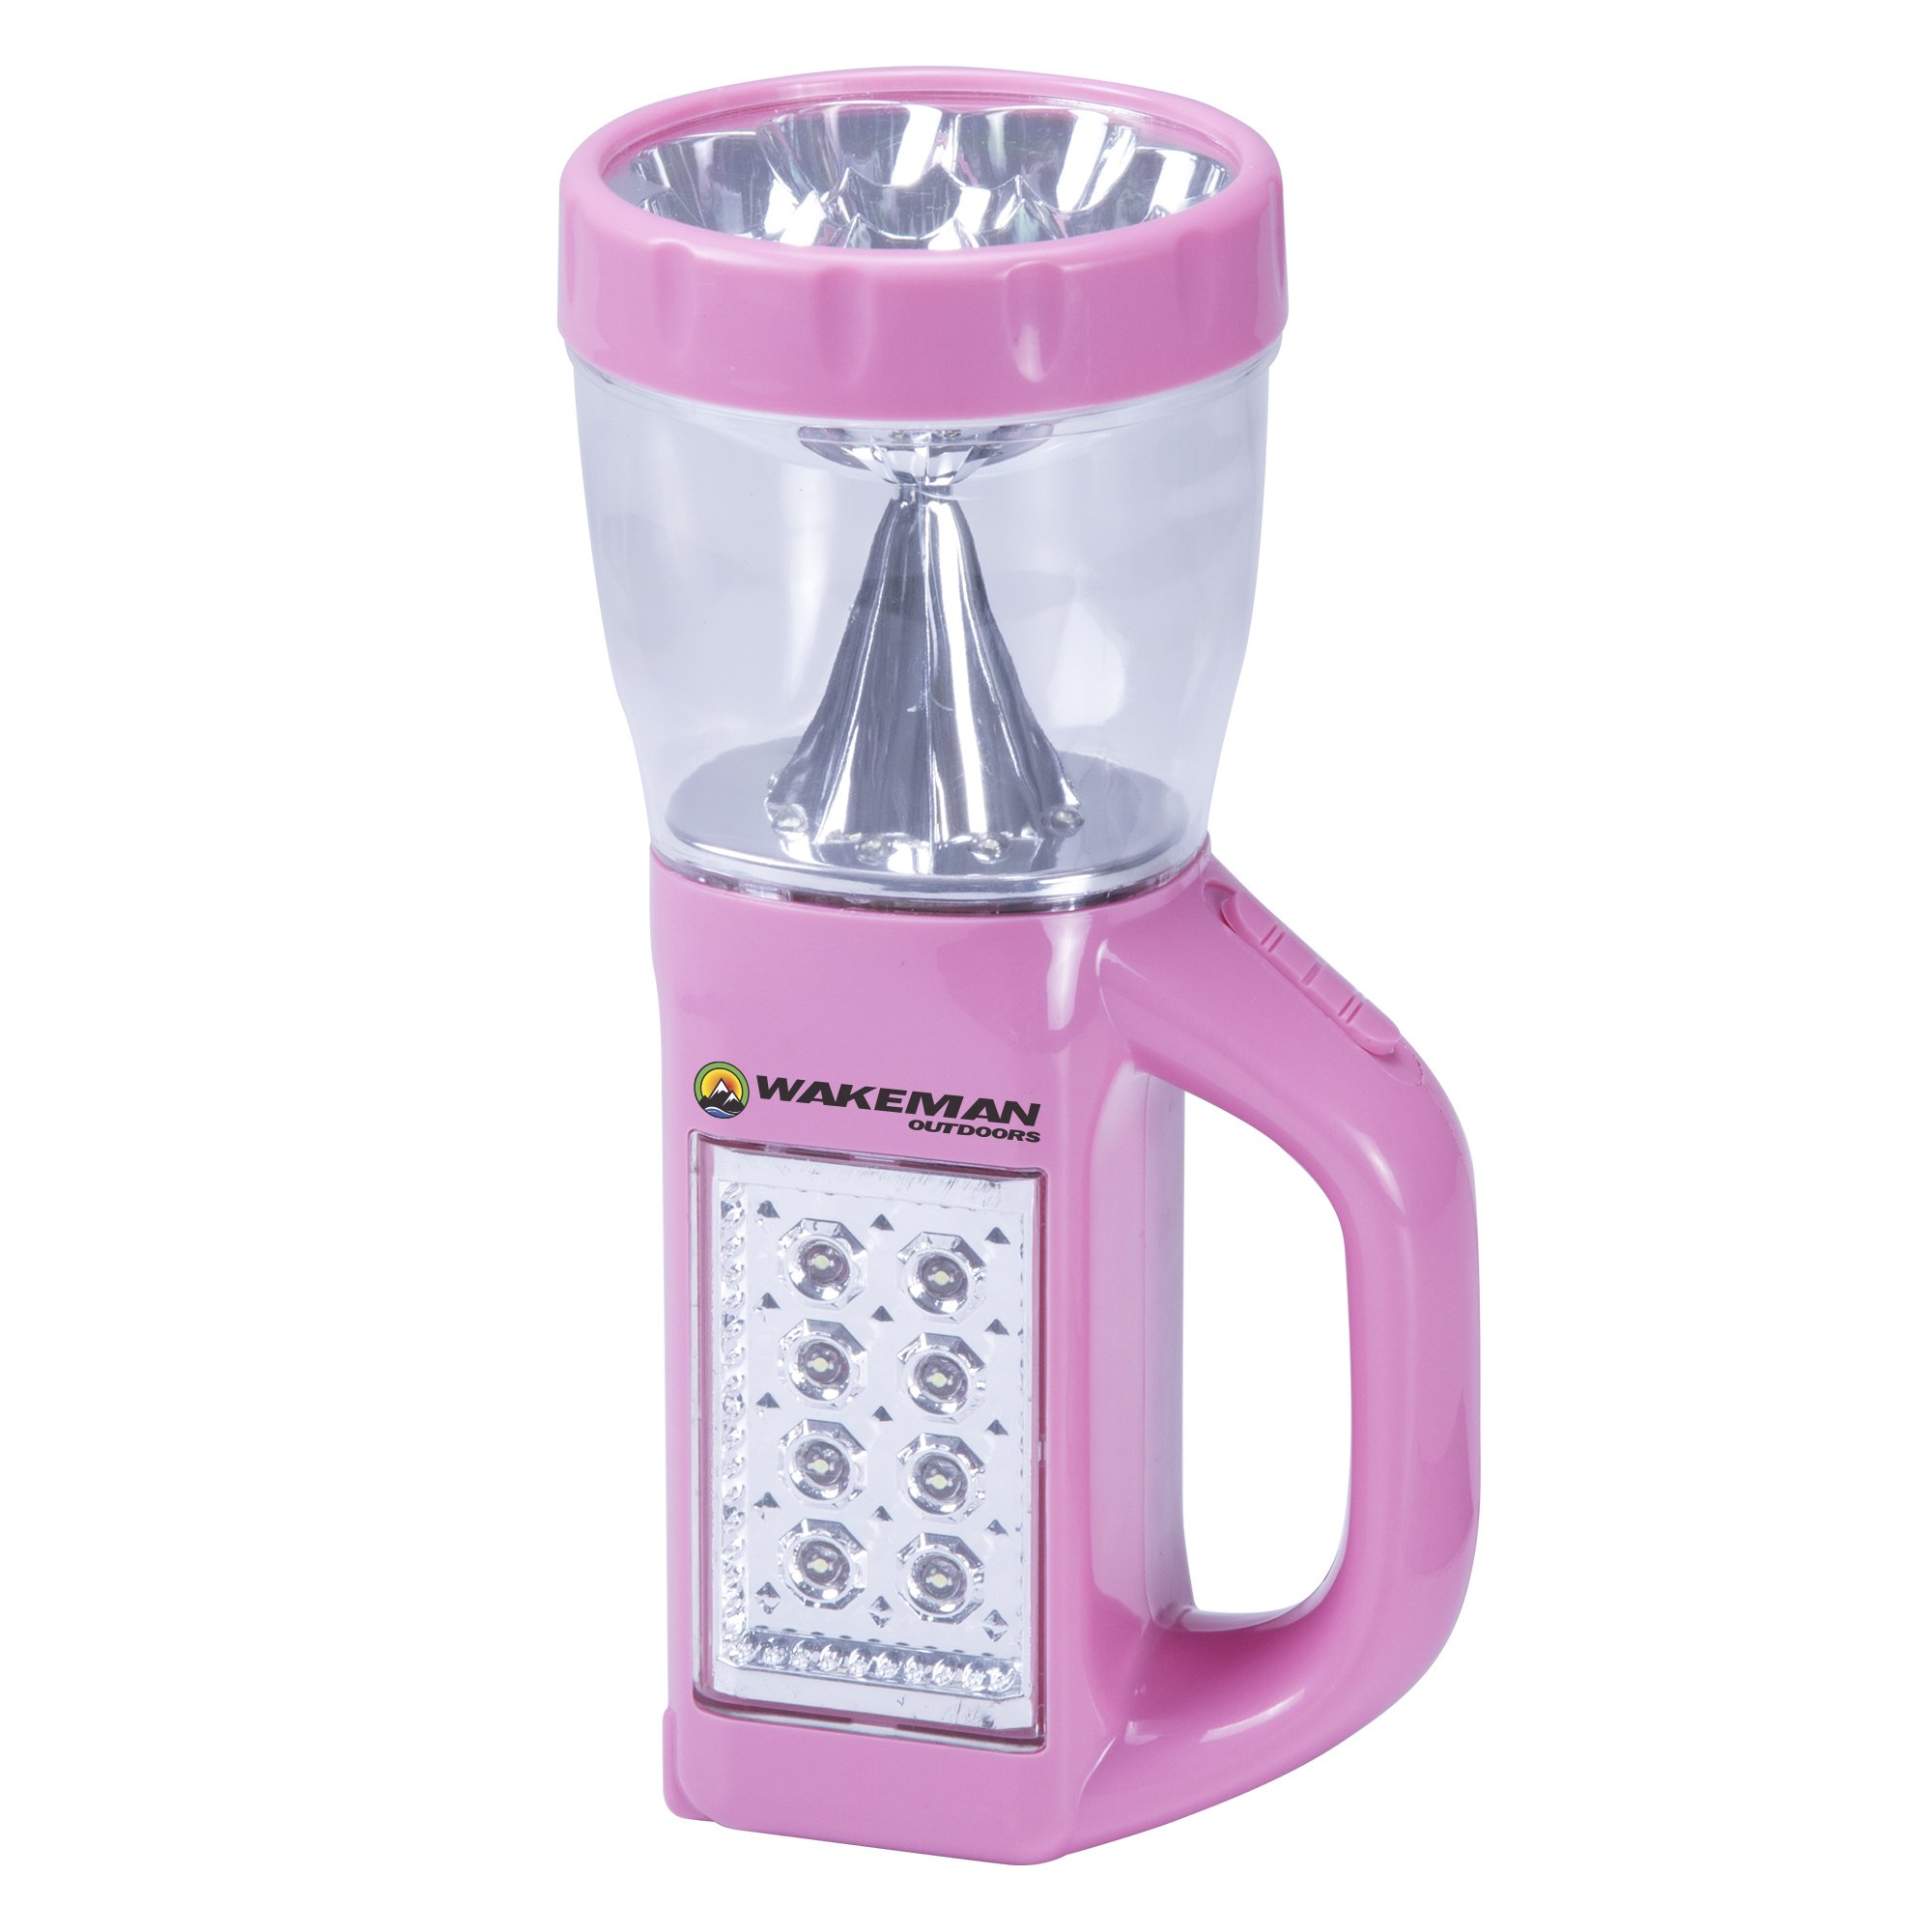 3 in 1 LED Lantern, Flashlight and Panel Light, Lightweight Camping Lantern by Wakeman Outdoors (for Camping Hiking Reading and Emergency) (Pink) by Wakeman